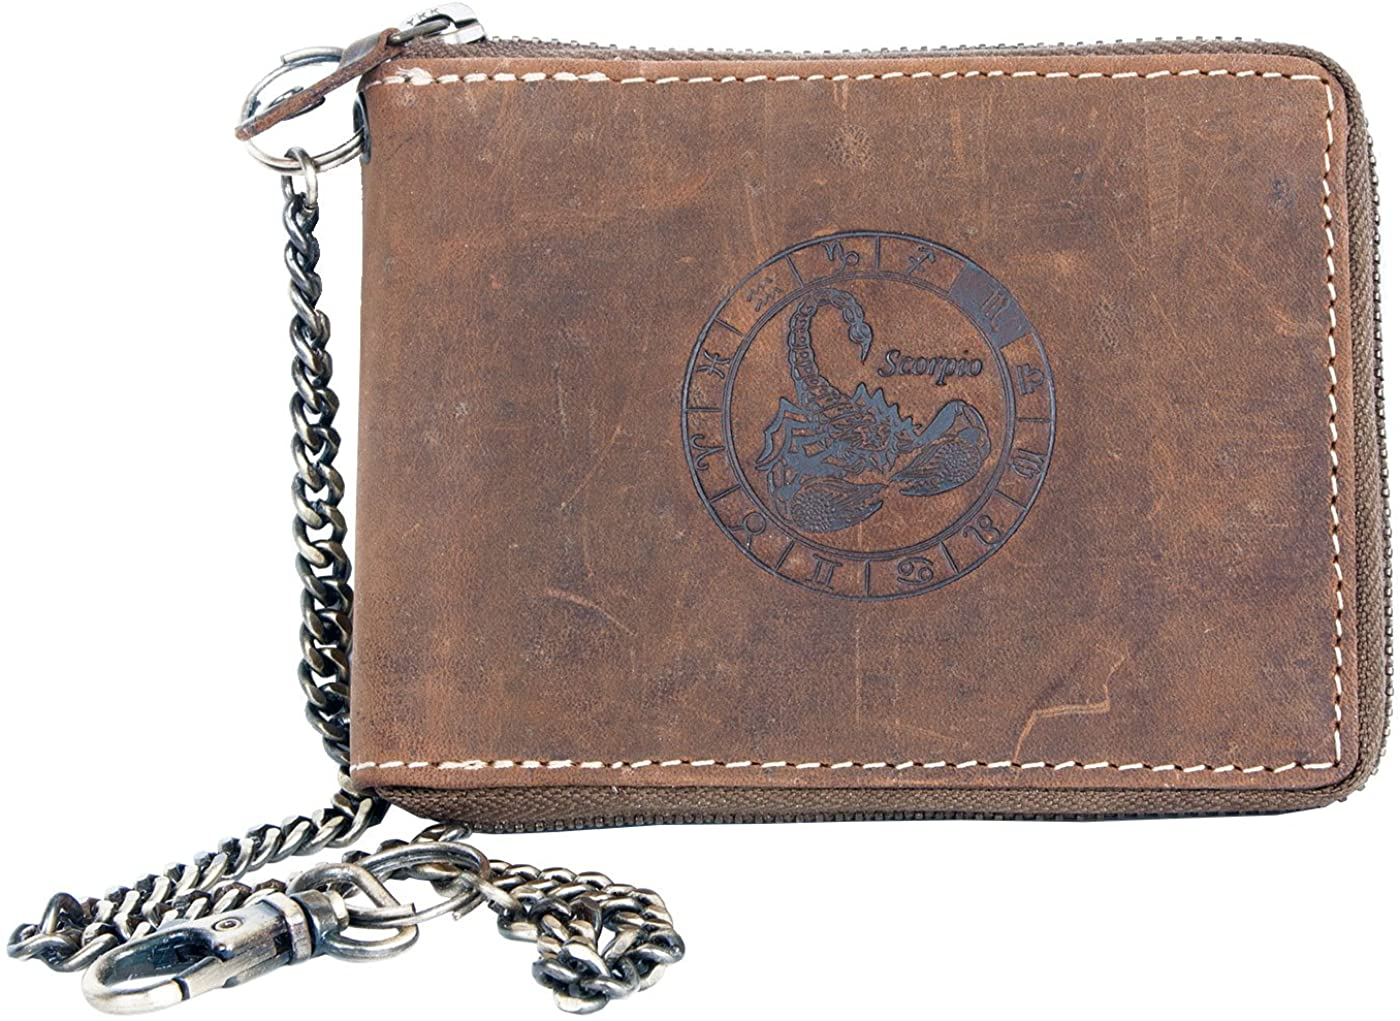 Genuine Leather Wallet Metal Zip-around With Metal Chain With Zodiac Sign Scorpio